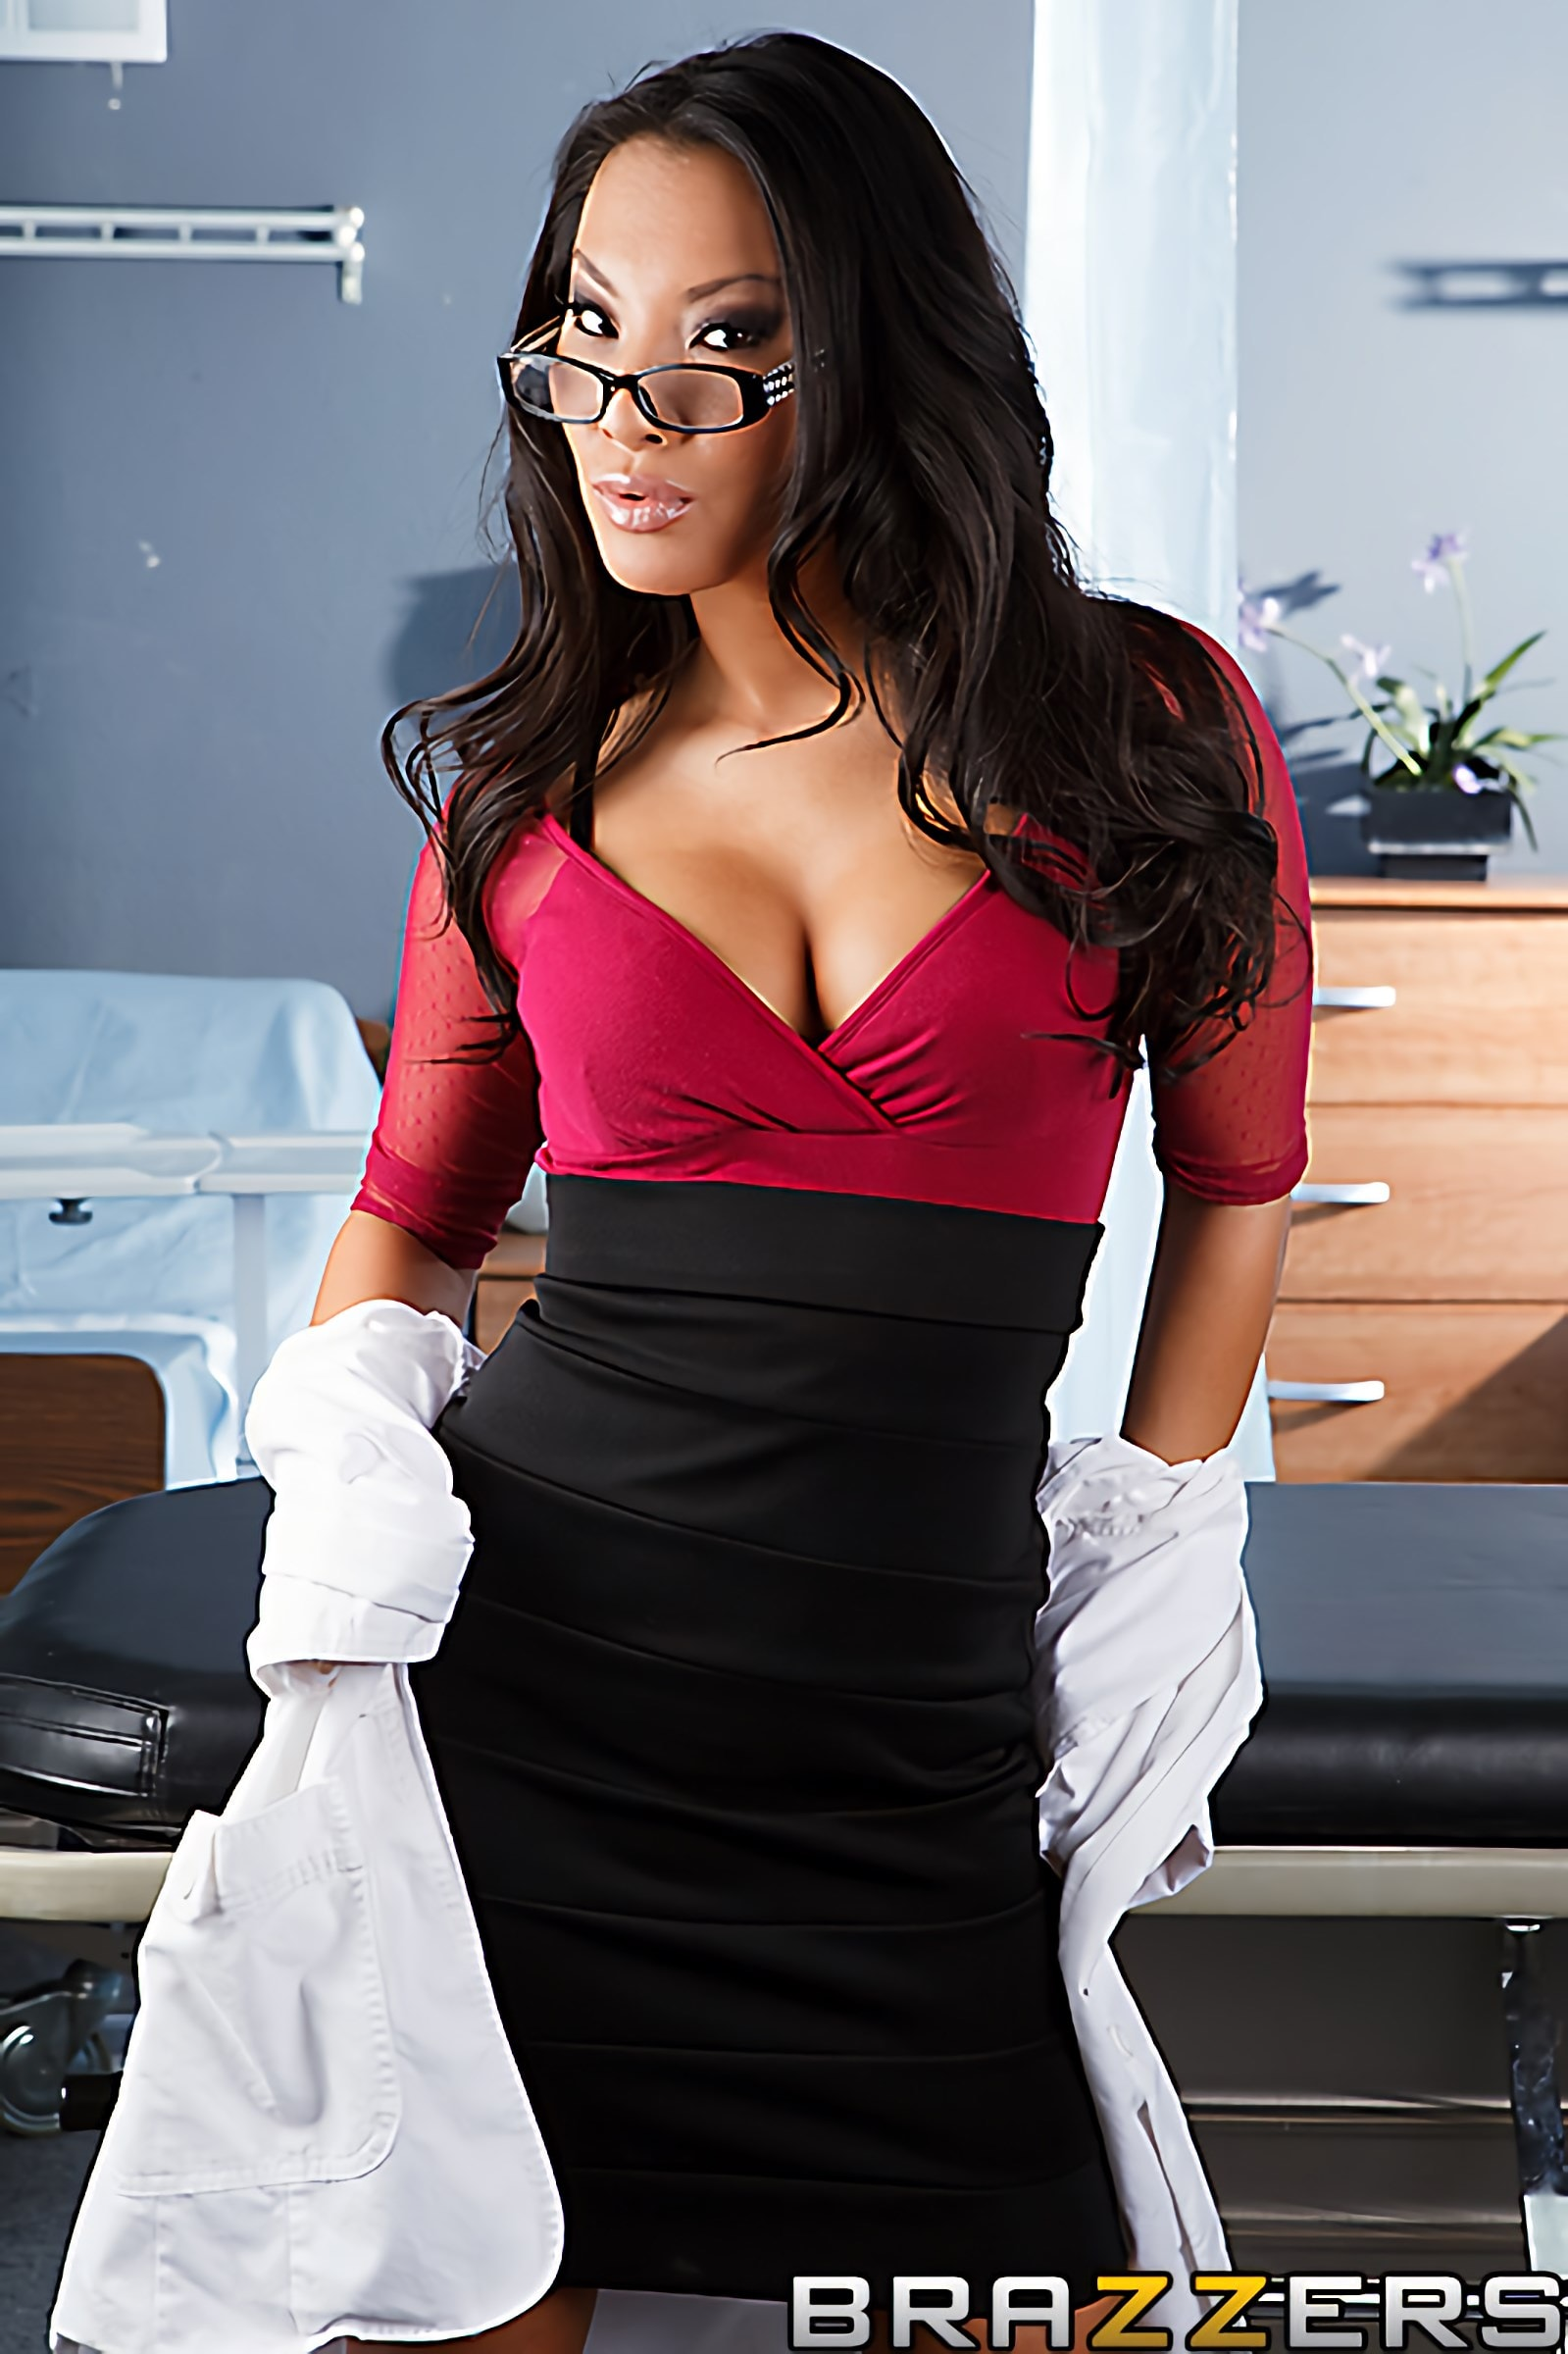 Brazzers 'I Still Havent Fucked What Im Looking For' starring Asa Akira (Photo 11)